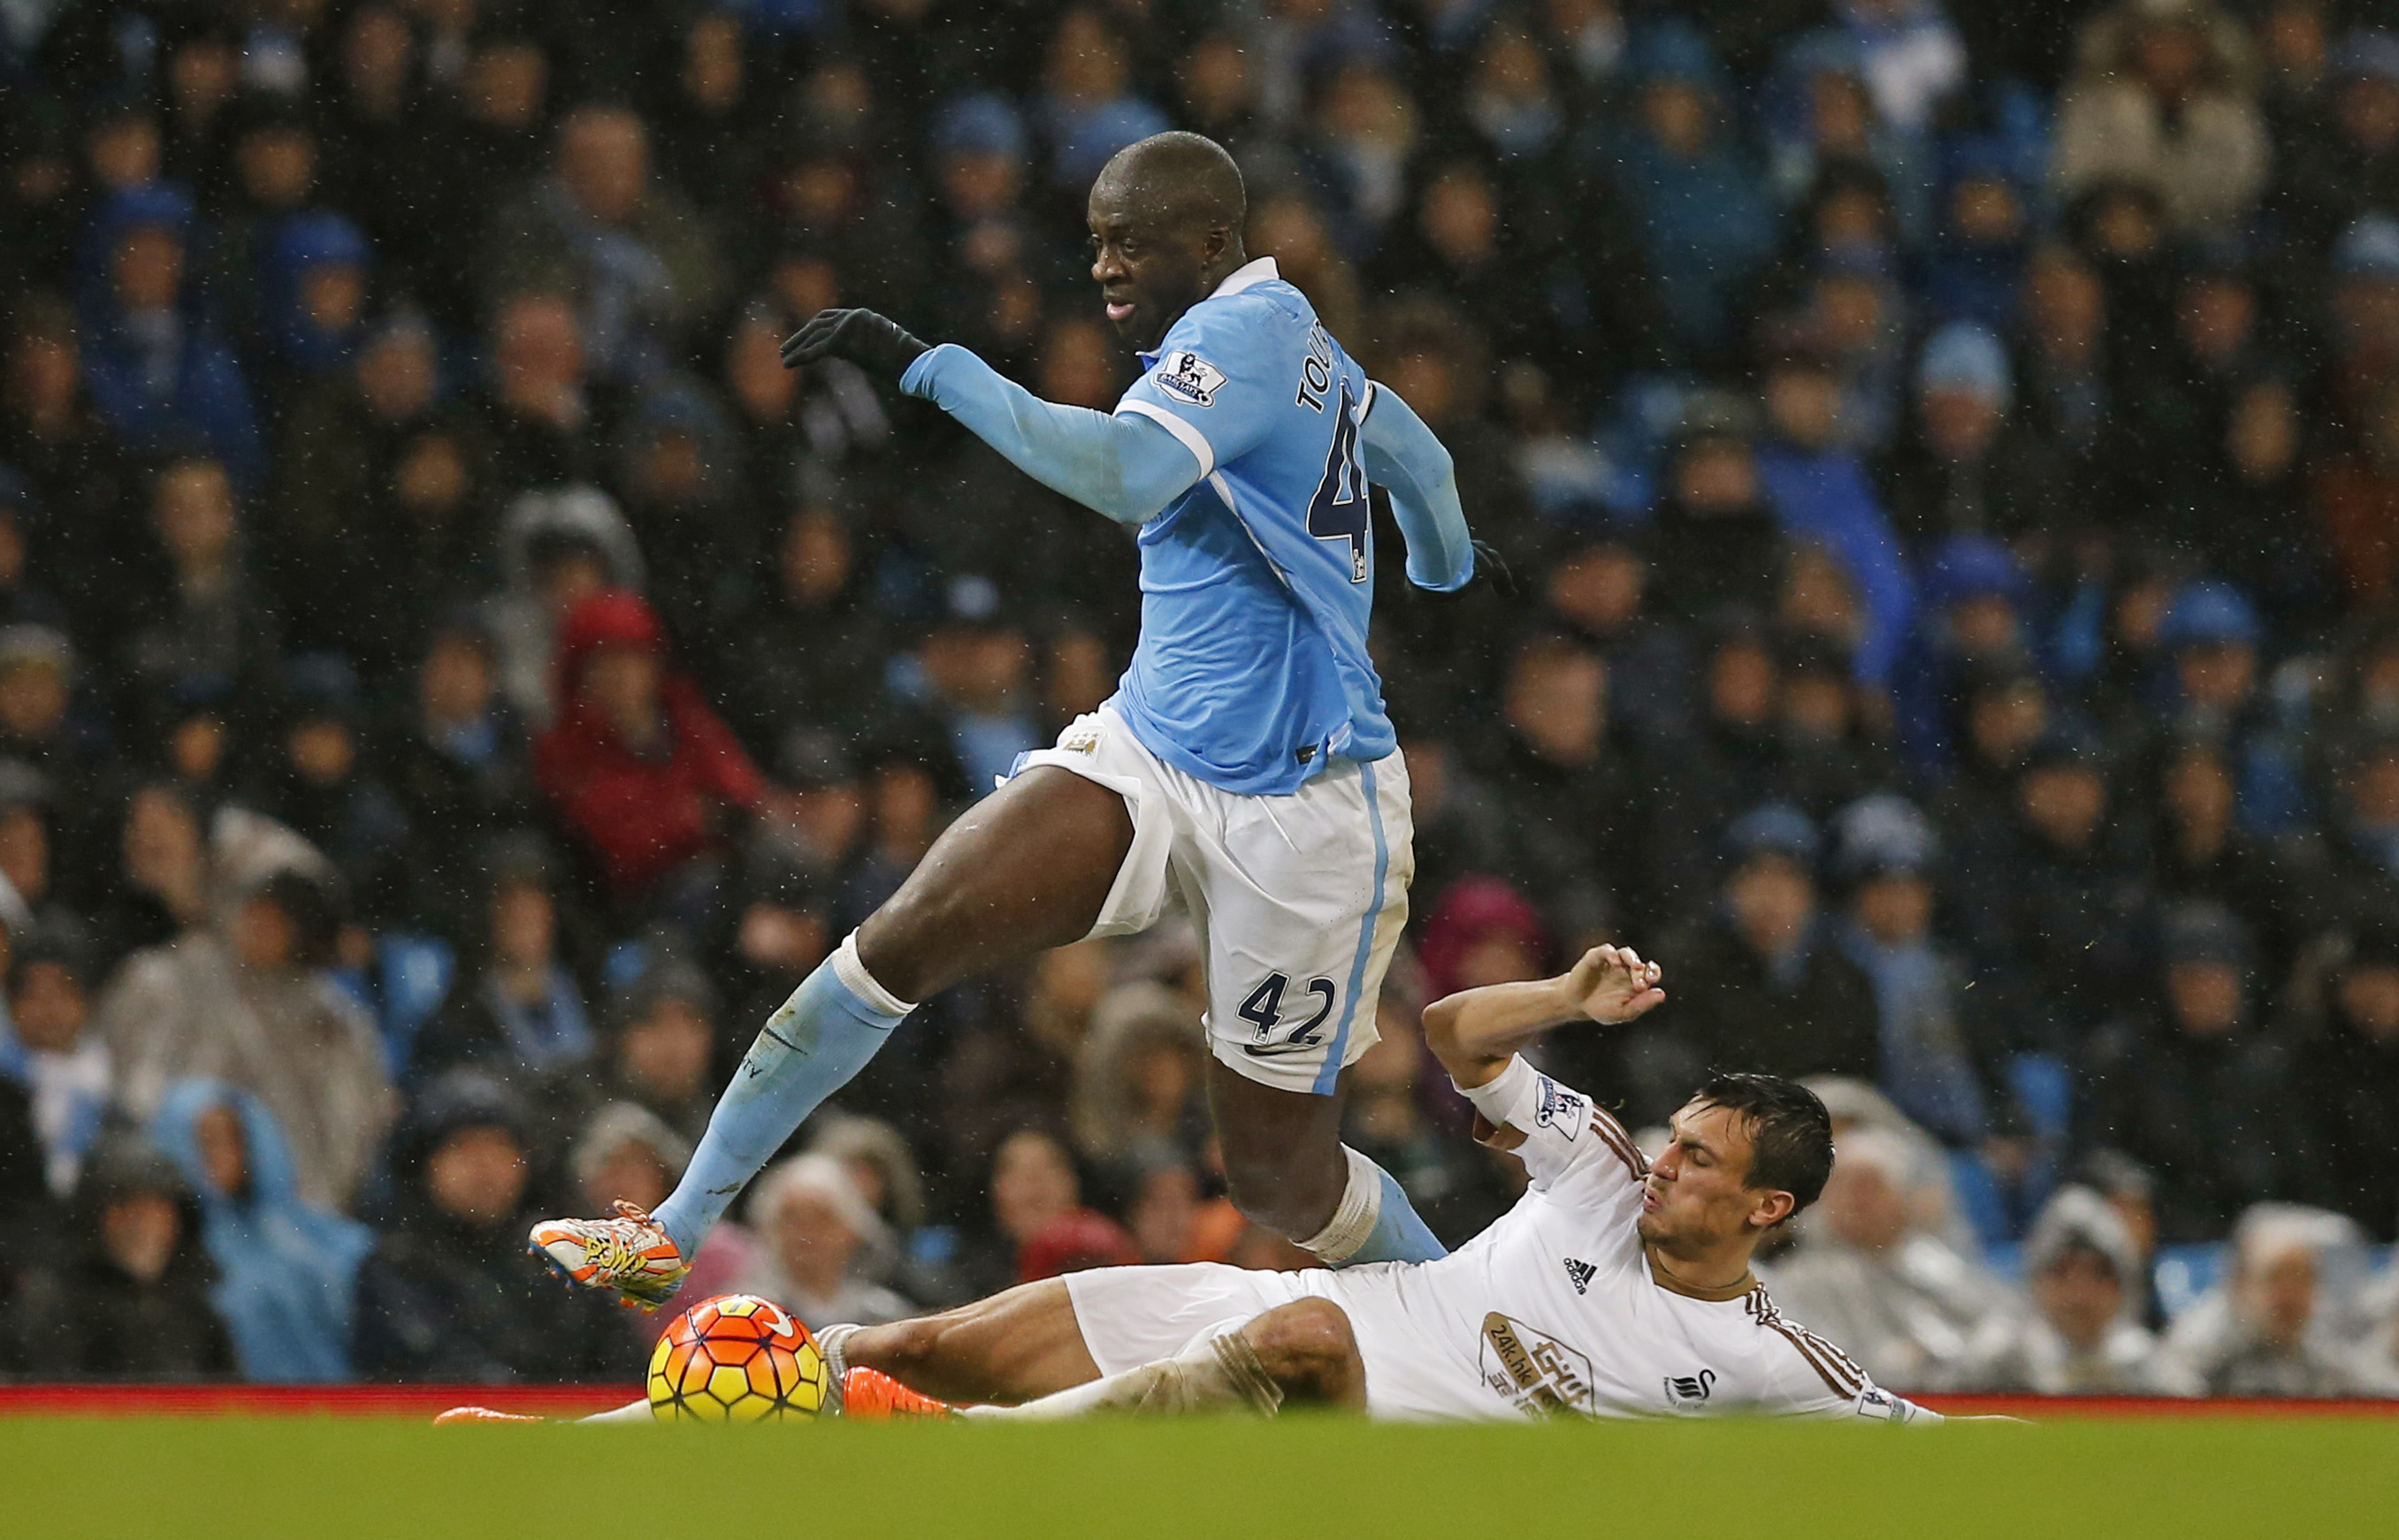 Manchester City's Yaya Toure in action with Swansea City's Jack Cork during Barclays Premier League game at Etihad Stadium on December 12, 2015. Photo: Reuters